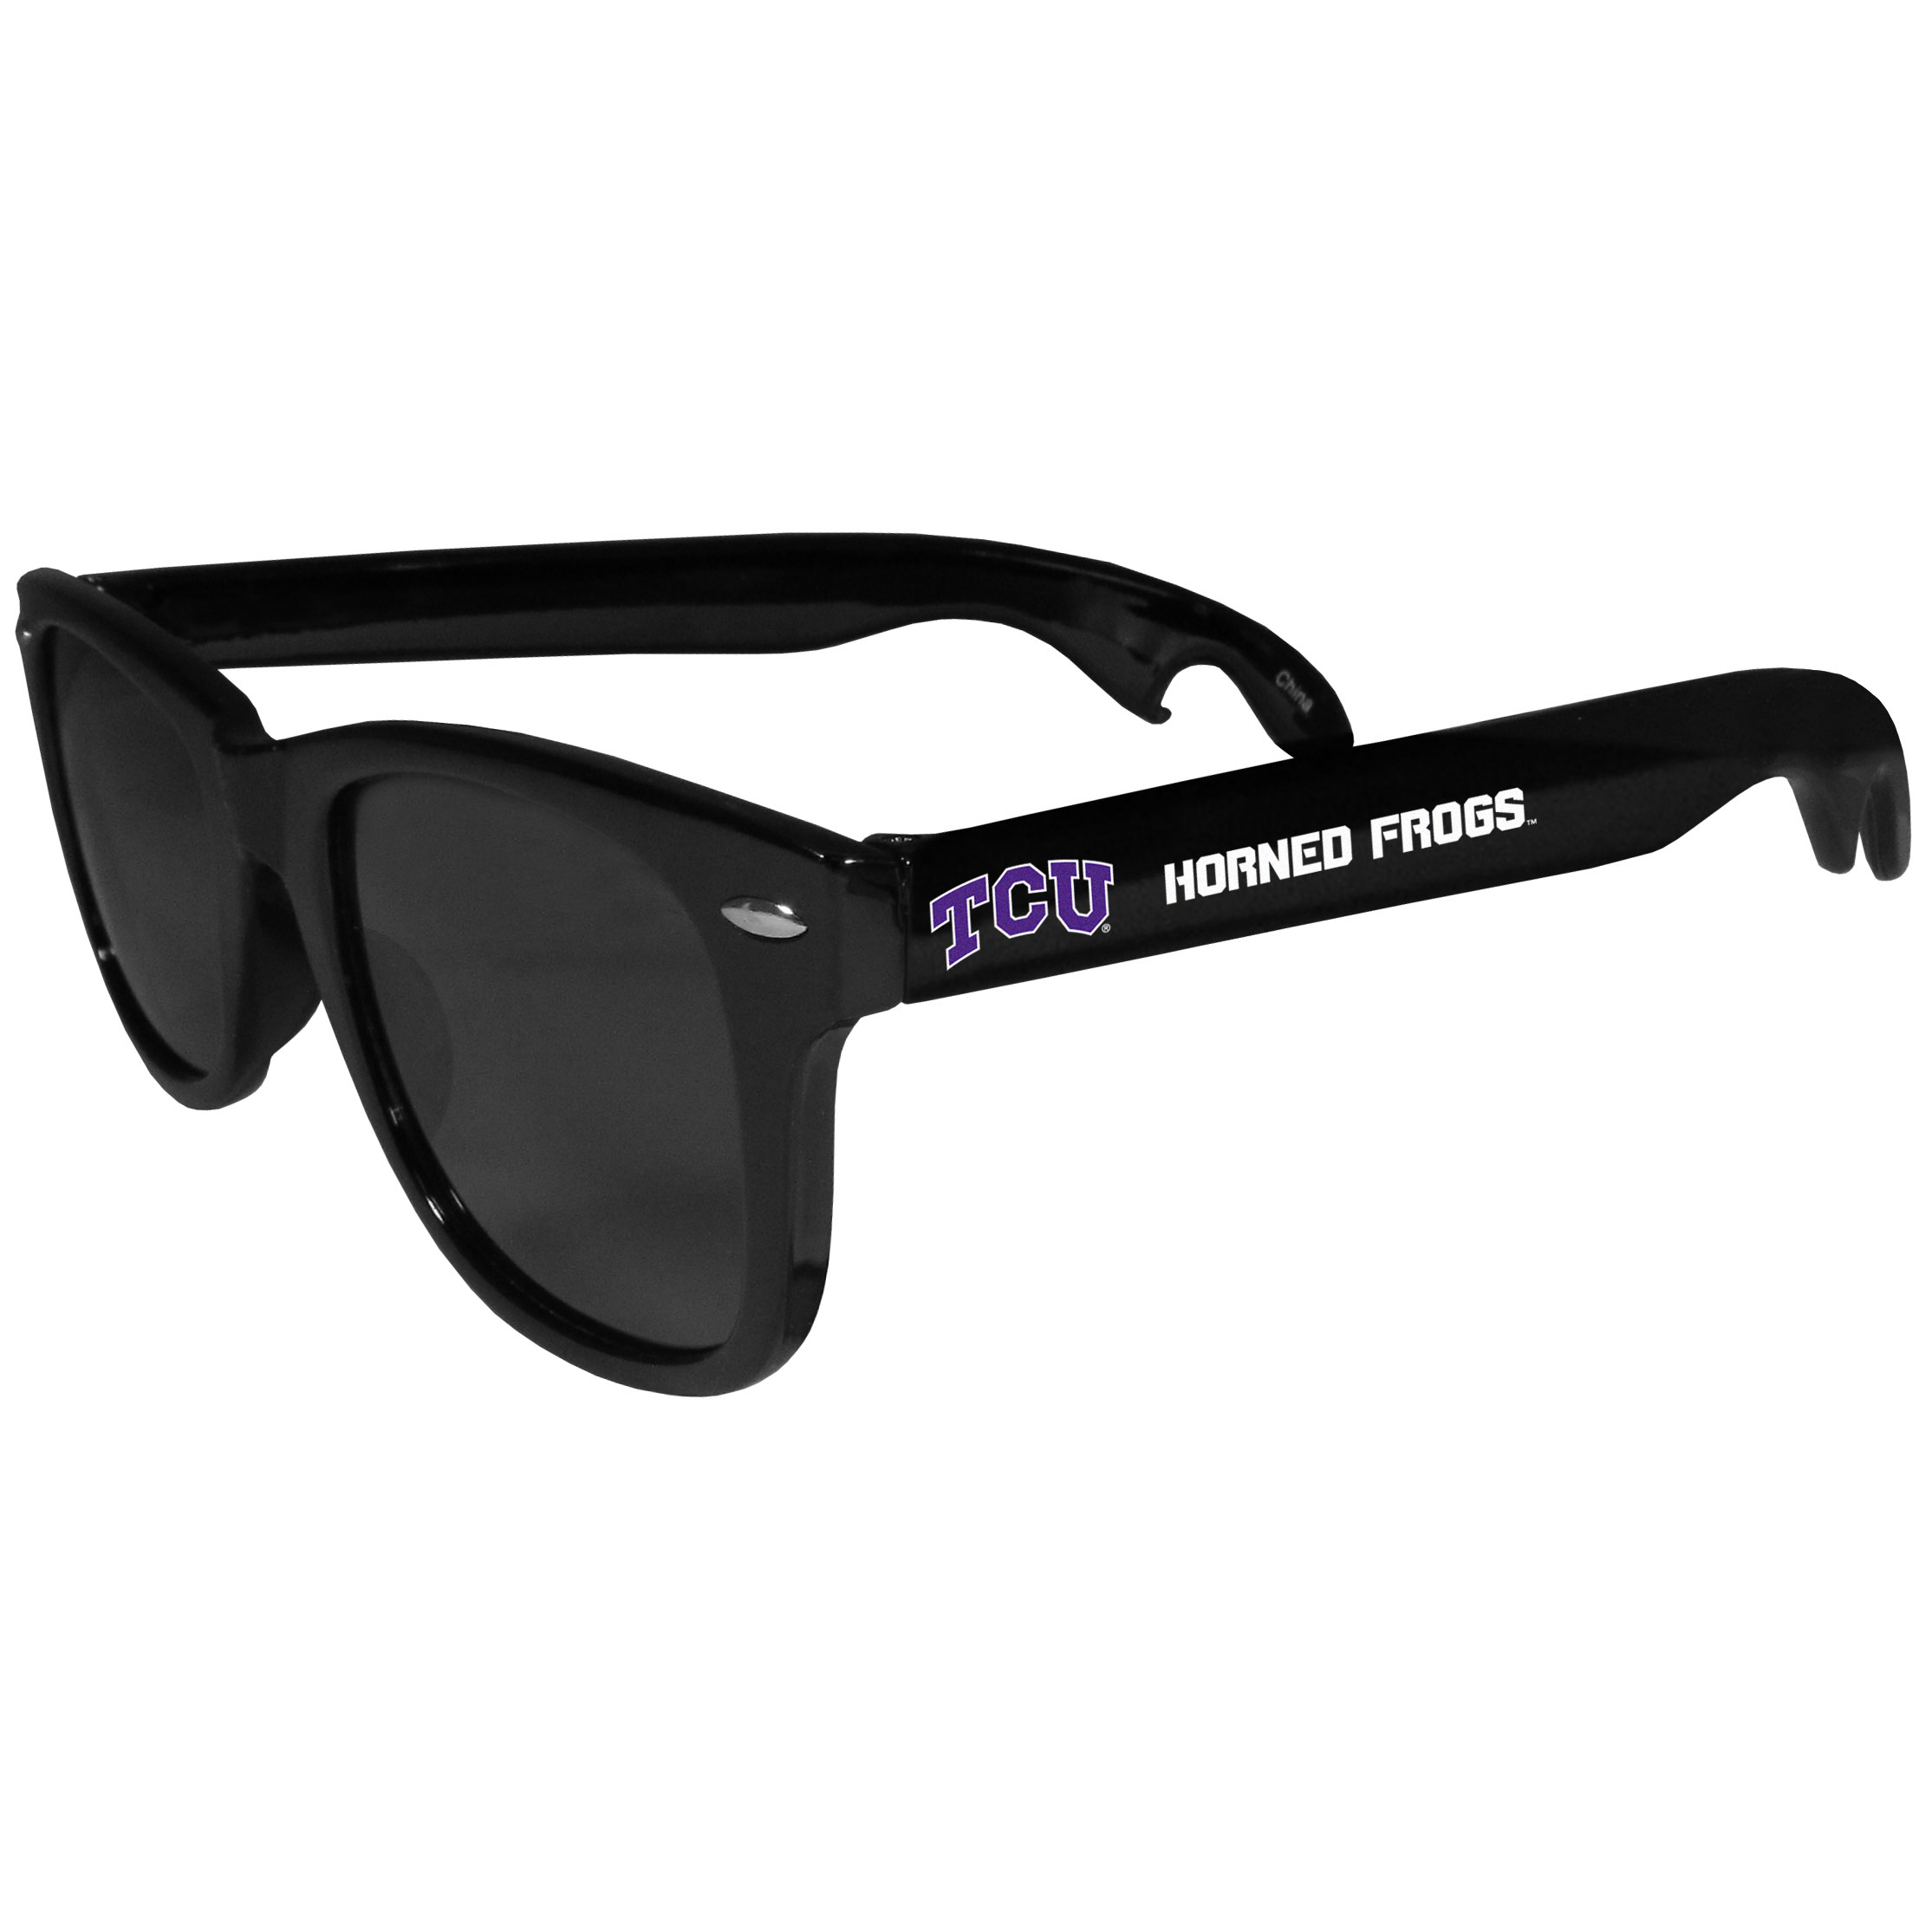 TCU Horned Frogs Beachfarer Bottle Opener Sunglasses - Seriously, these sunglasses open bottles! Keep the party going with these amazing TCU Horned Frogs bottle opener sunglasses. The stylish retro frames feature team designs on the arms and functional bottle openers on the end of the arms. Whether you are at the beach or having a backyard BBQ on game day, these shades will keep your eyes protected with 100% UVA/UVB protection and keep you hydrated with the handy bottle opener arms.